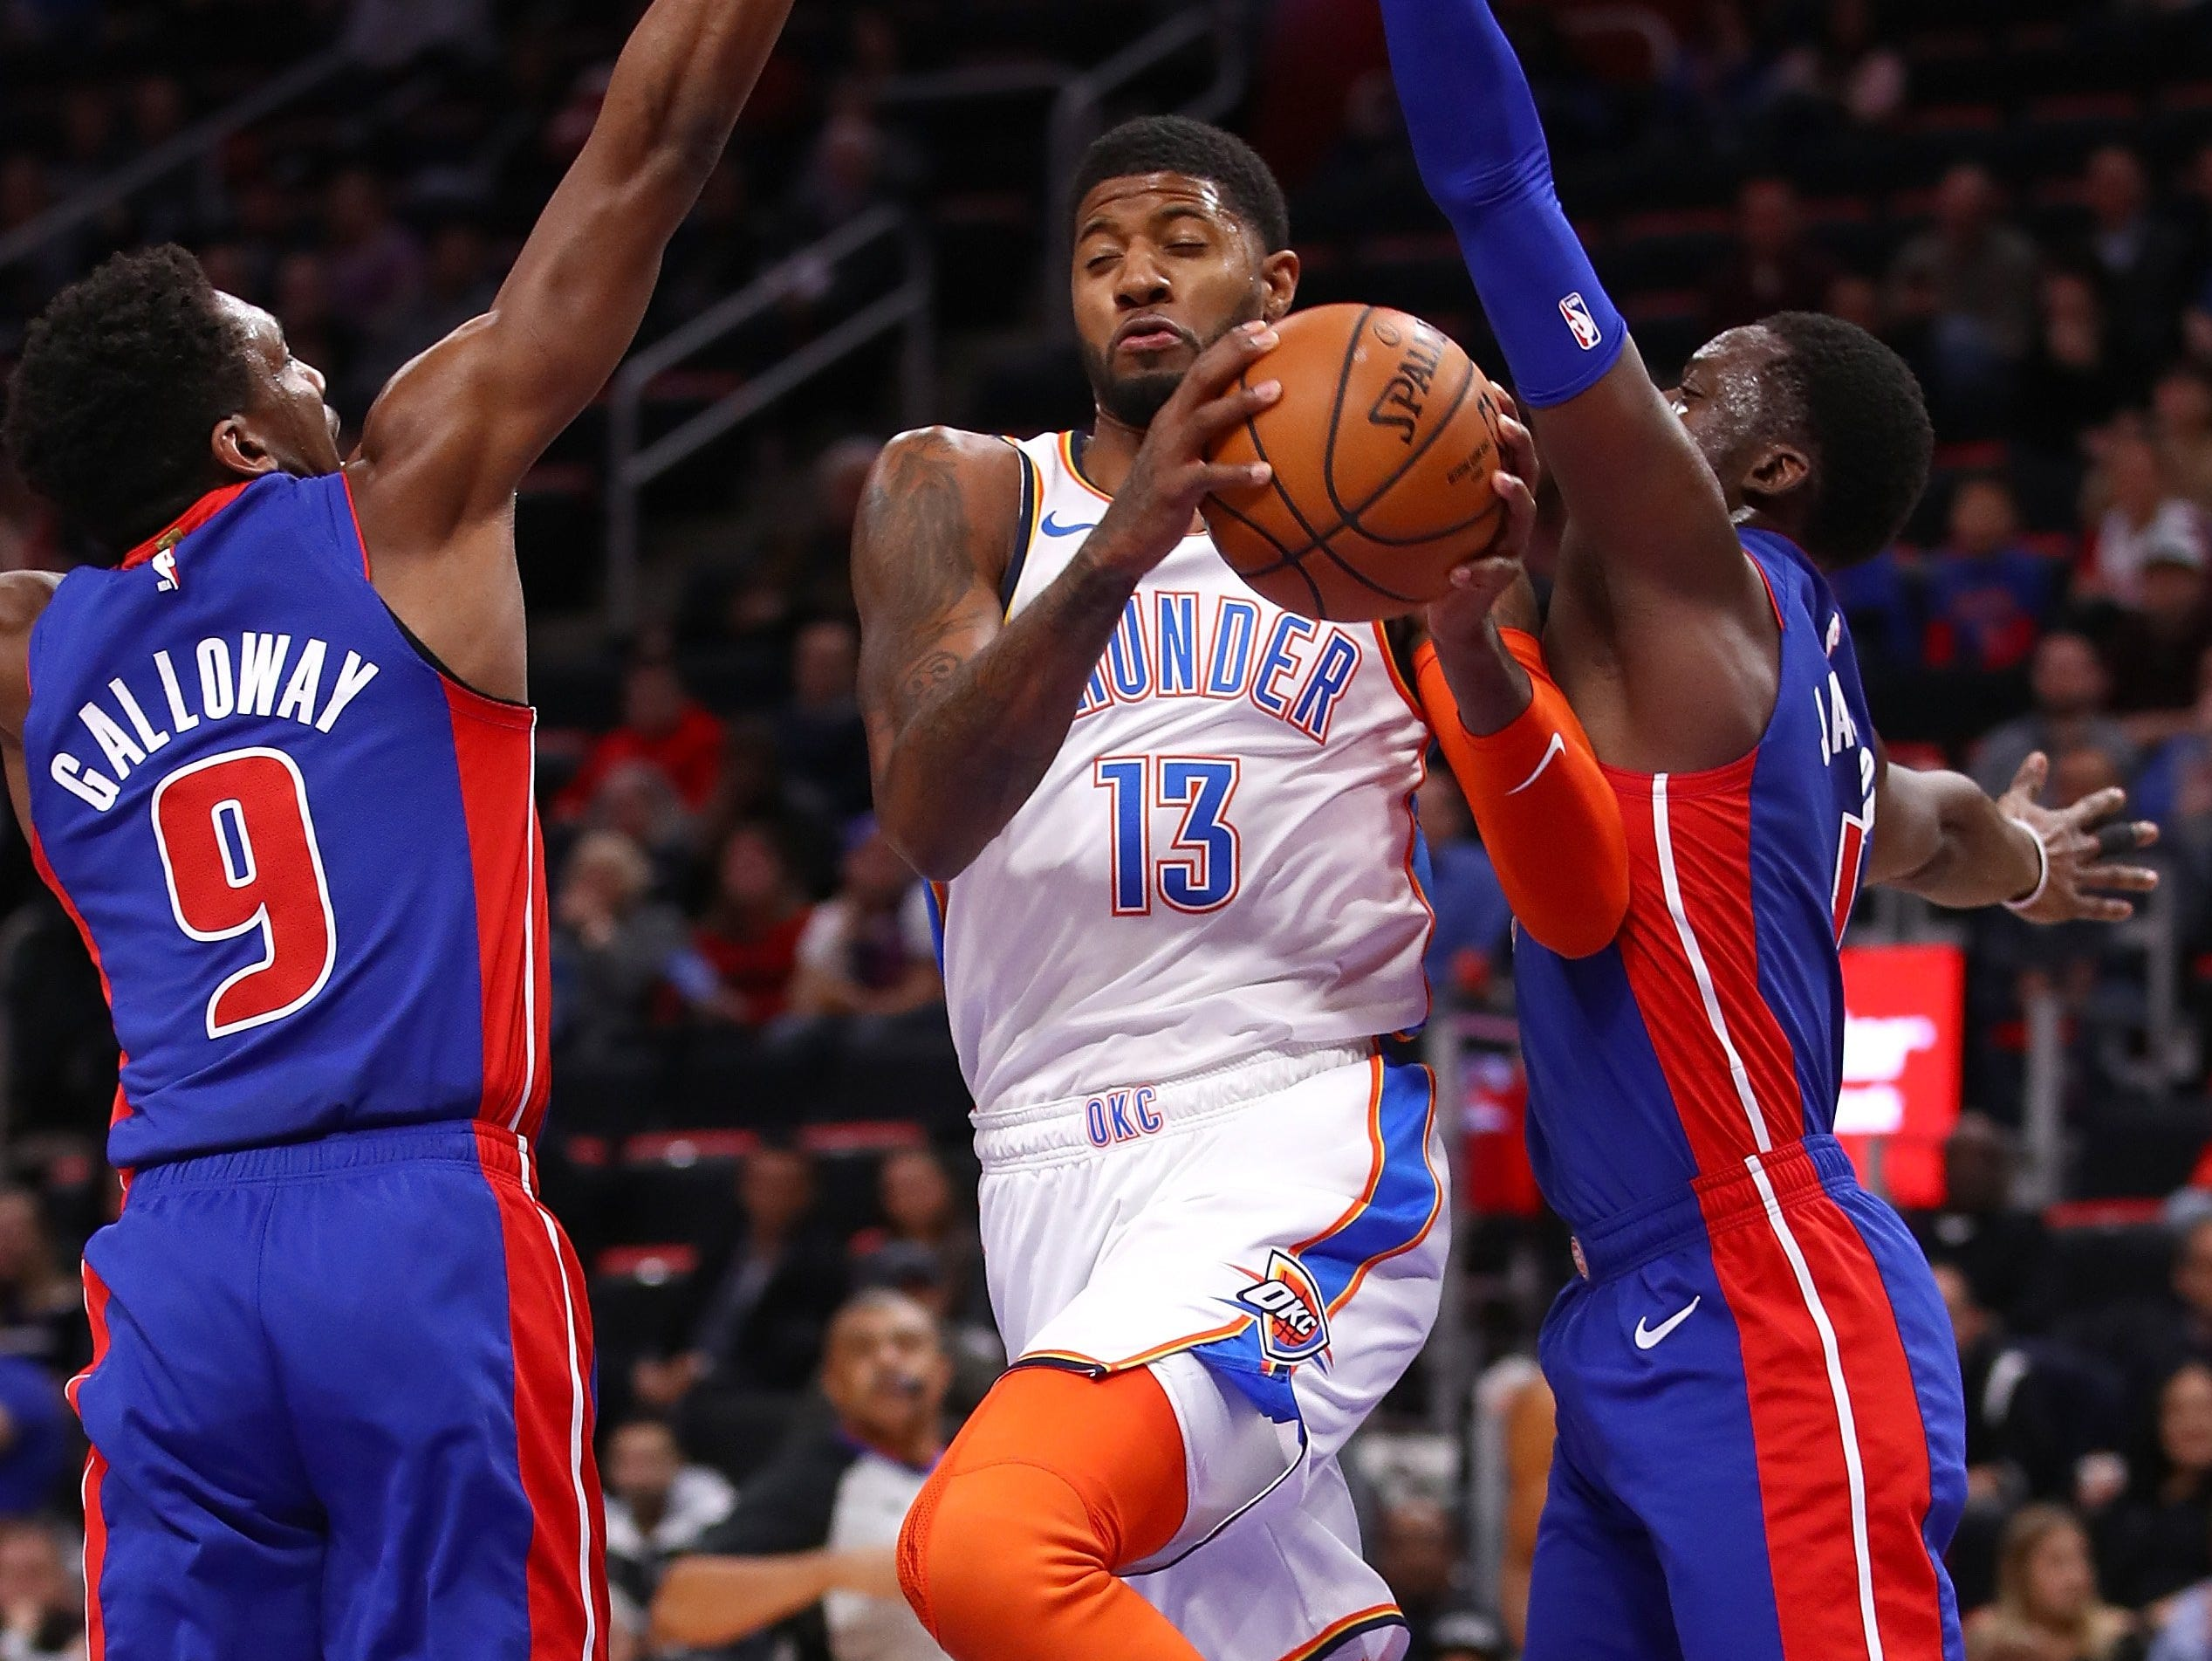 Paul George #13 of the Oklahoma City Thunder drives between Langston Galloway #9 and Reggie Jackson #1 of the Detroit Pistons during the first half at Little Caesars Arena on December 03, 2018 in Detroit, Michigan.